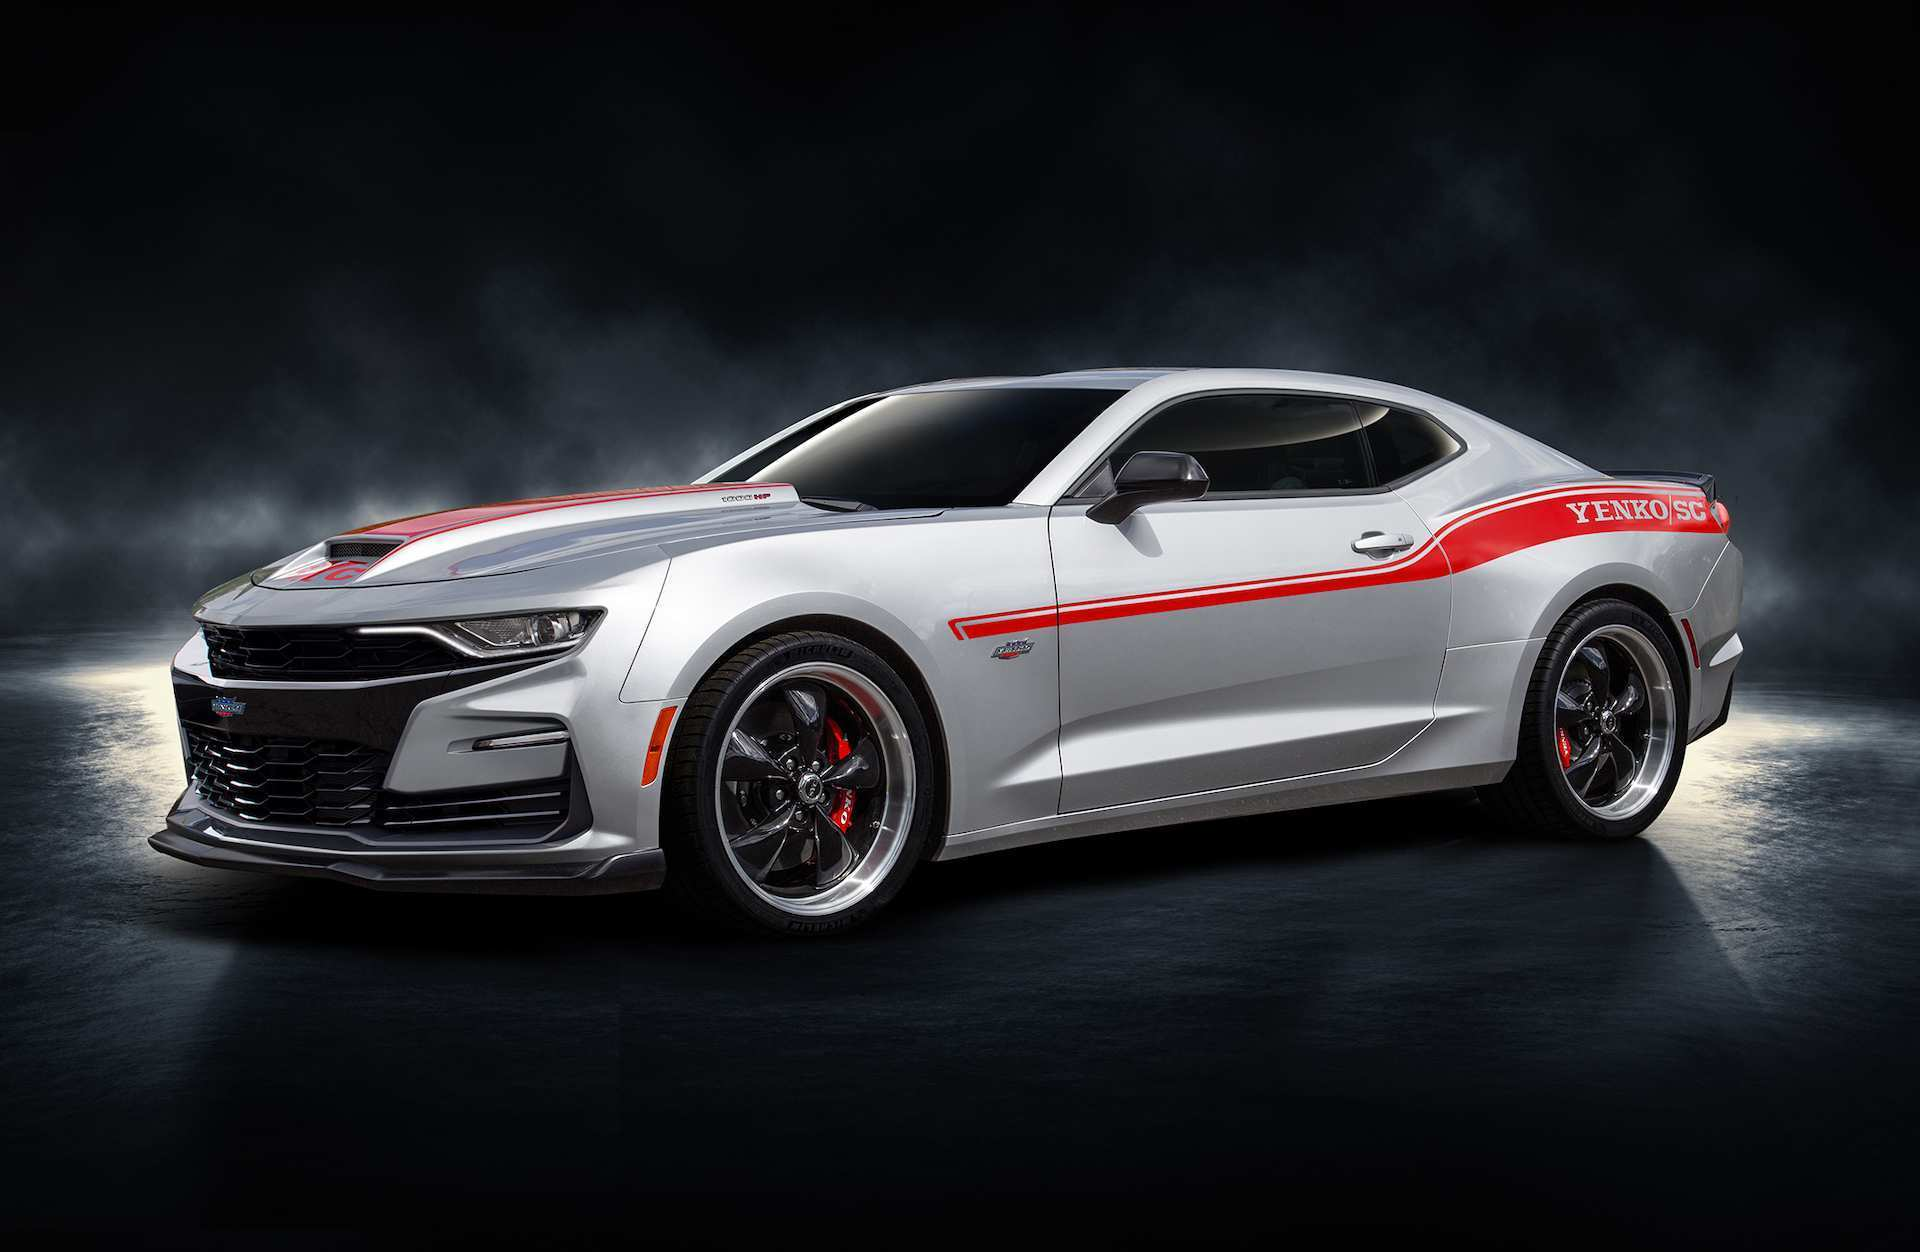 74 The Best 2019 Chevy Camaro Release Date